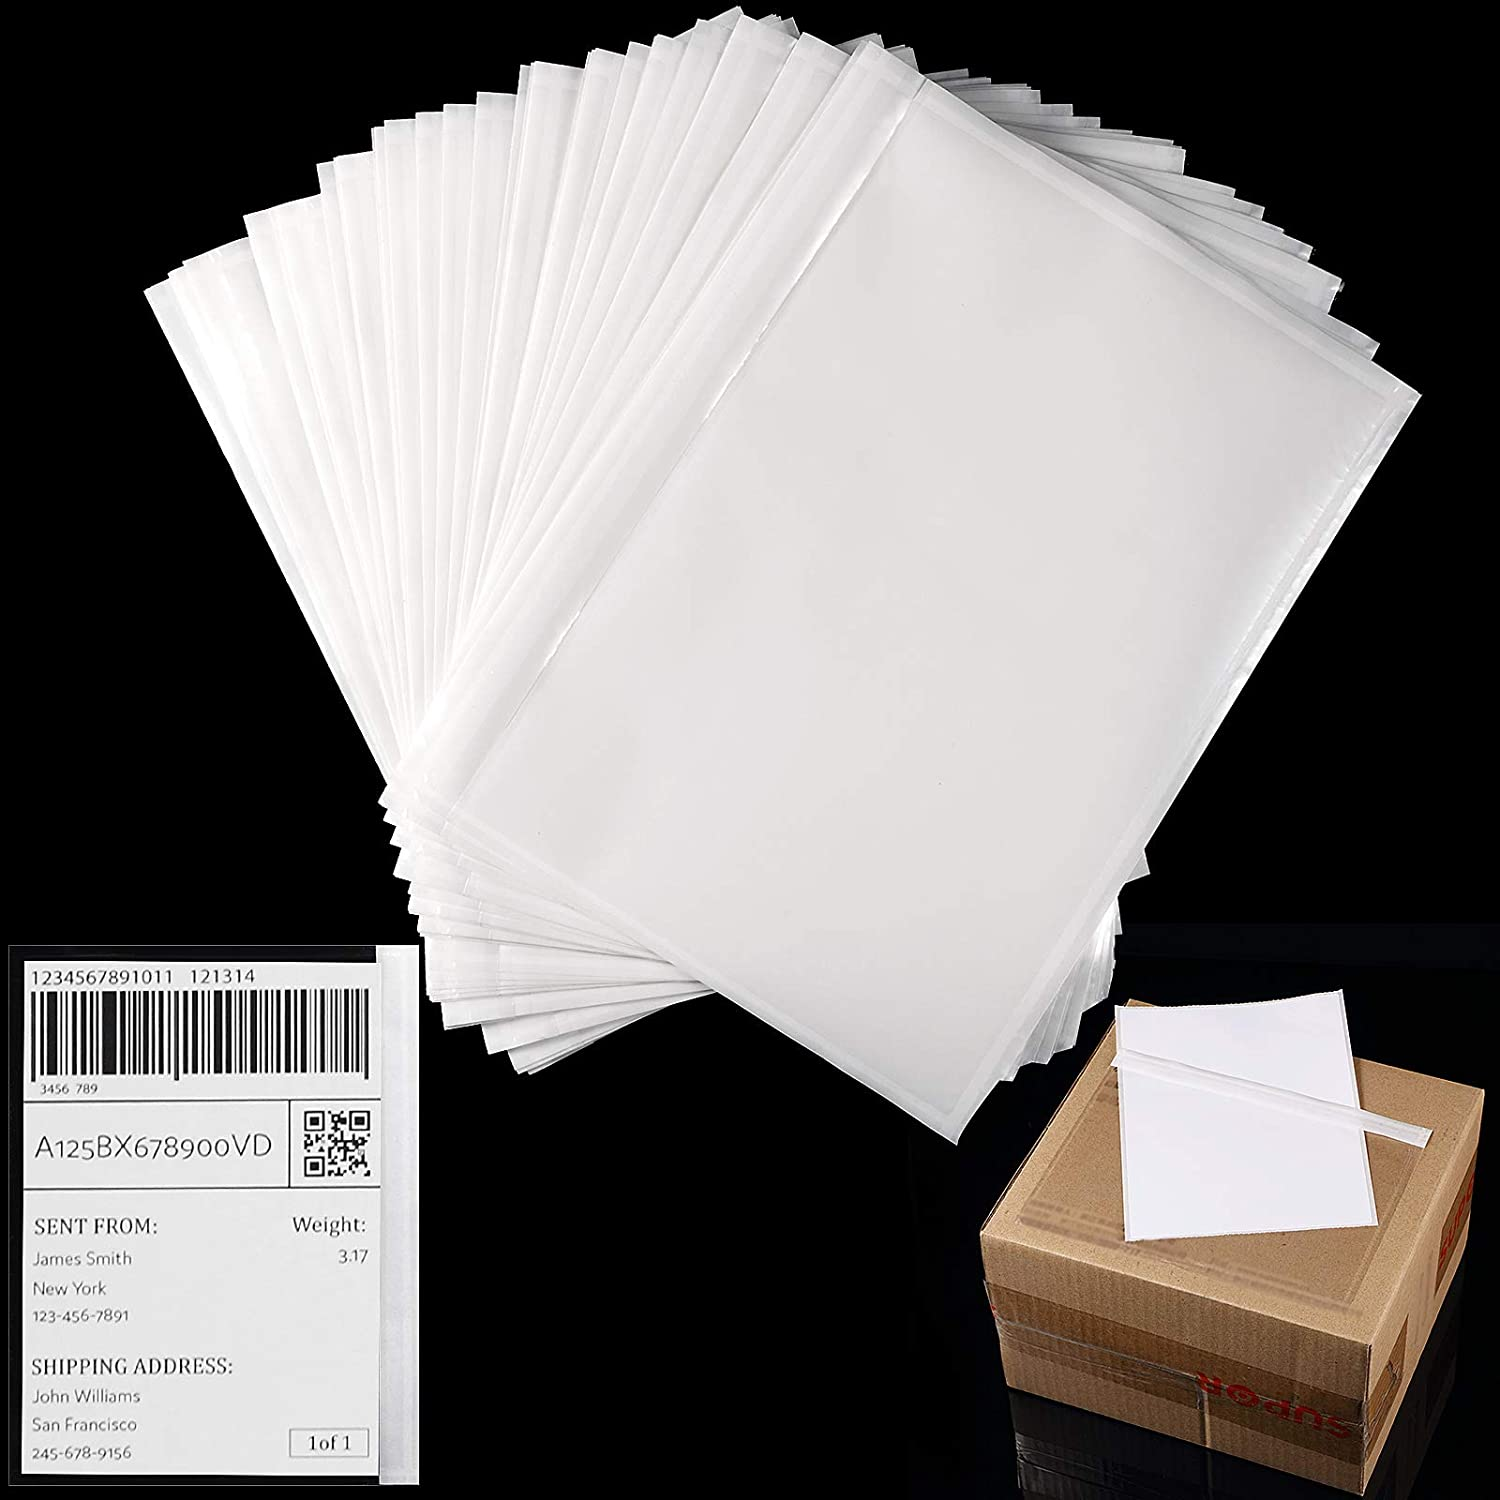 100 Sheets 7.5 x Max 76% OFF 5.5 Inch Quantity limited List Packing Envelopes Adhesive Clear